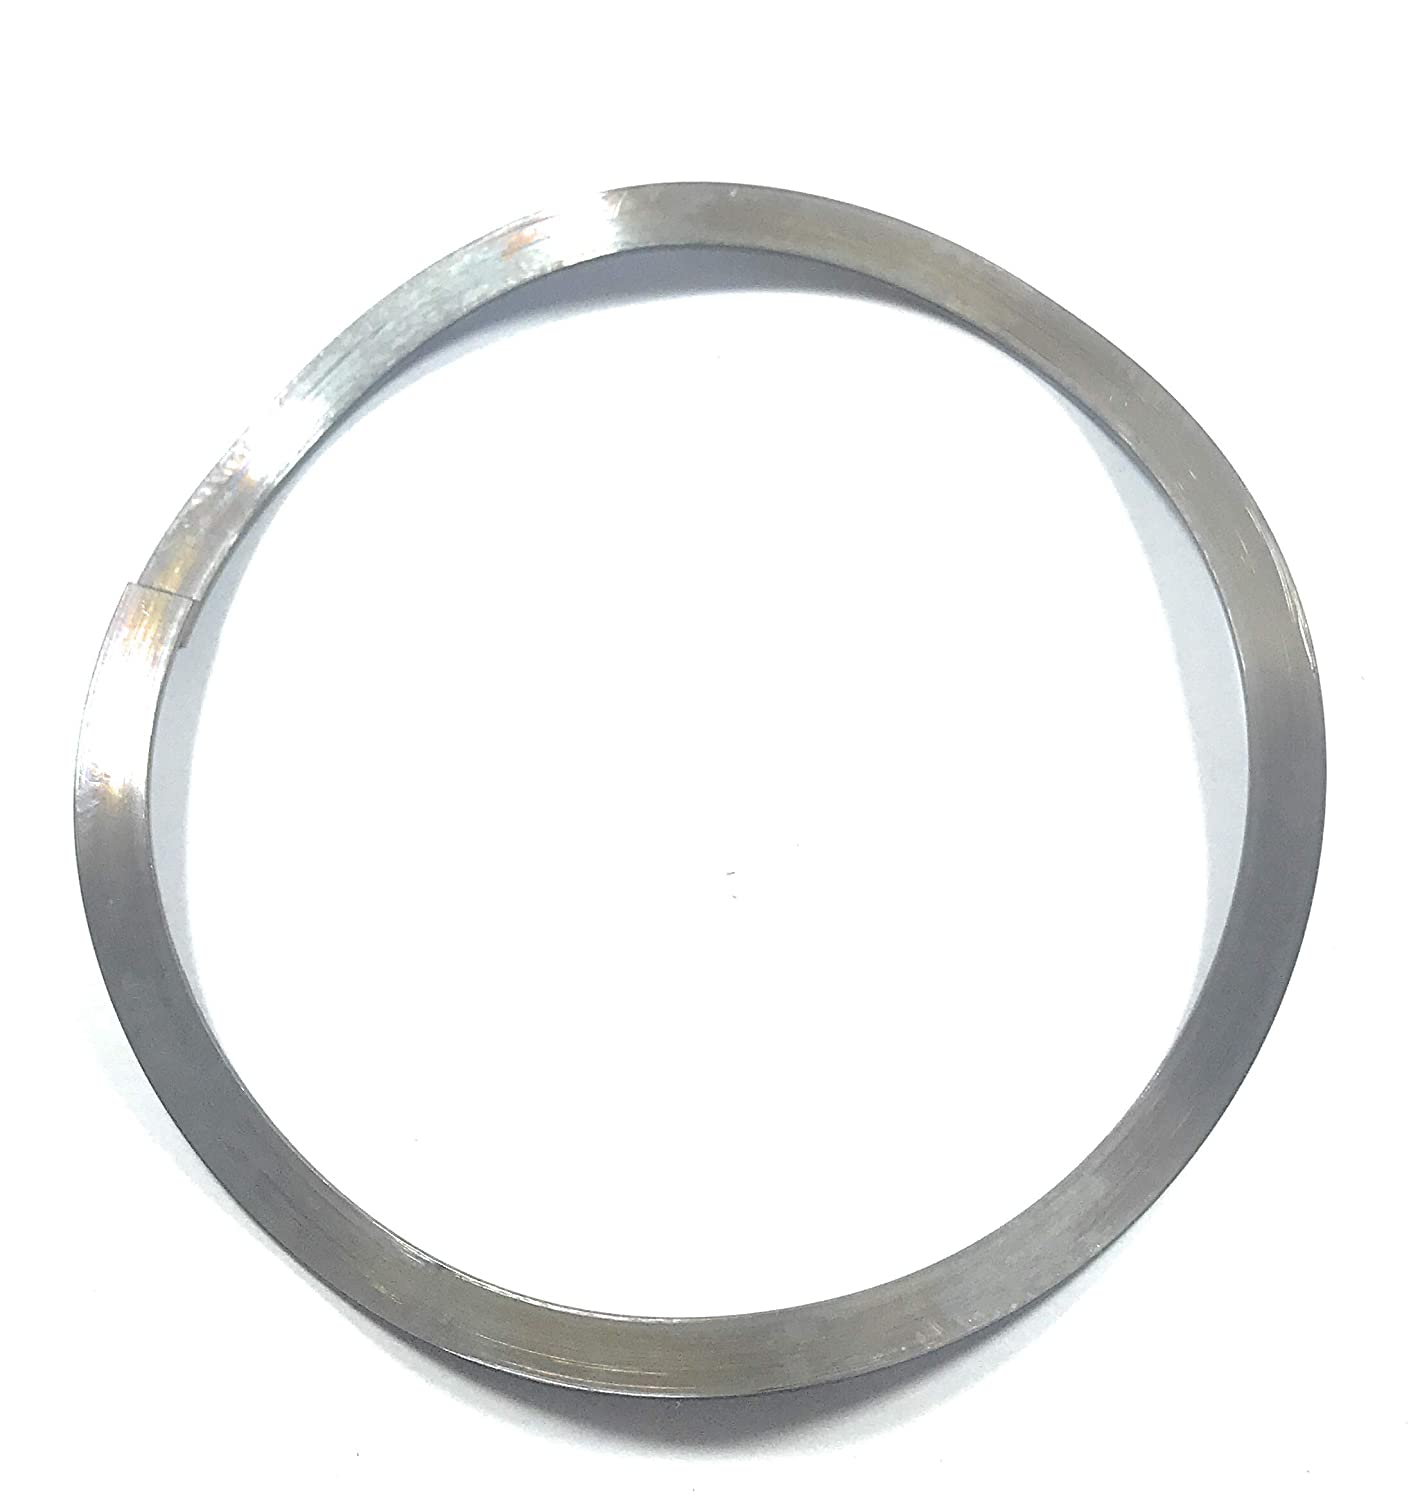 80mmOperates in bore Diameter 68.66mm Clears Shaft Diameter Stainless Steel 17-7PH Wave Washer with Overlap 0.76mmThickness Ltd. 5.59mmFree Height,218N@2.77mm Pack of 10 4 Waves,SSB-0315-s17,Metrics Shanghai Lijun spring Co